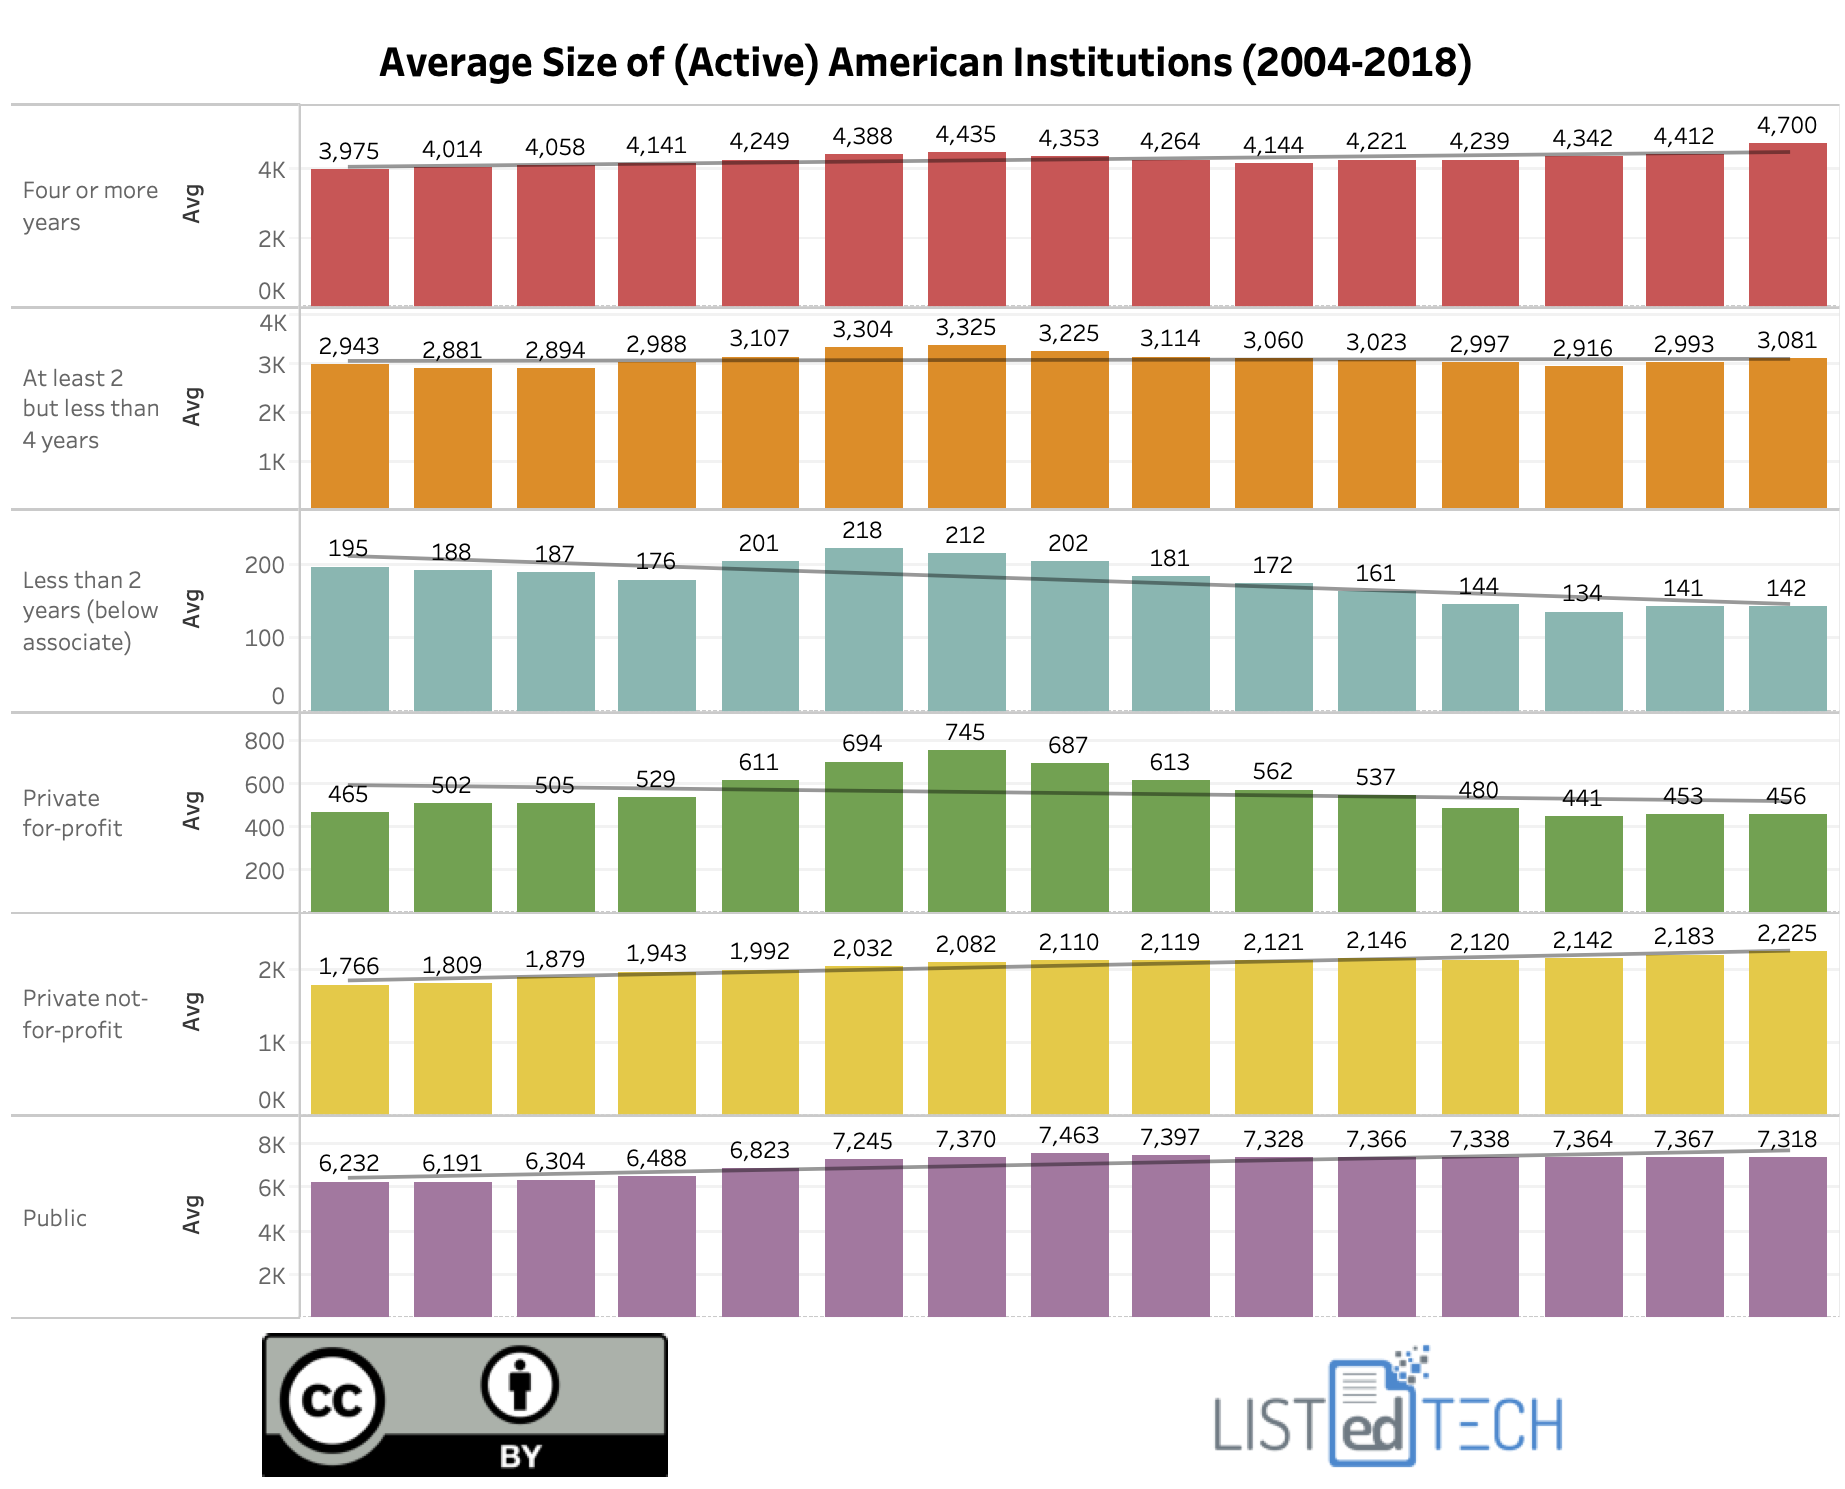 Average Size of American Institutions - LisTedTECH